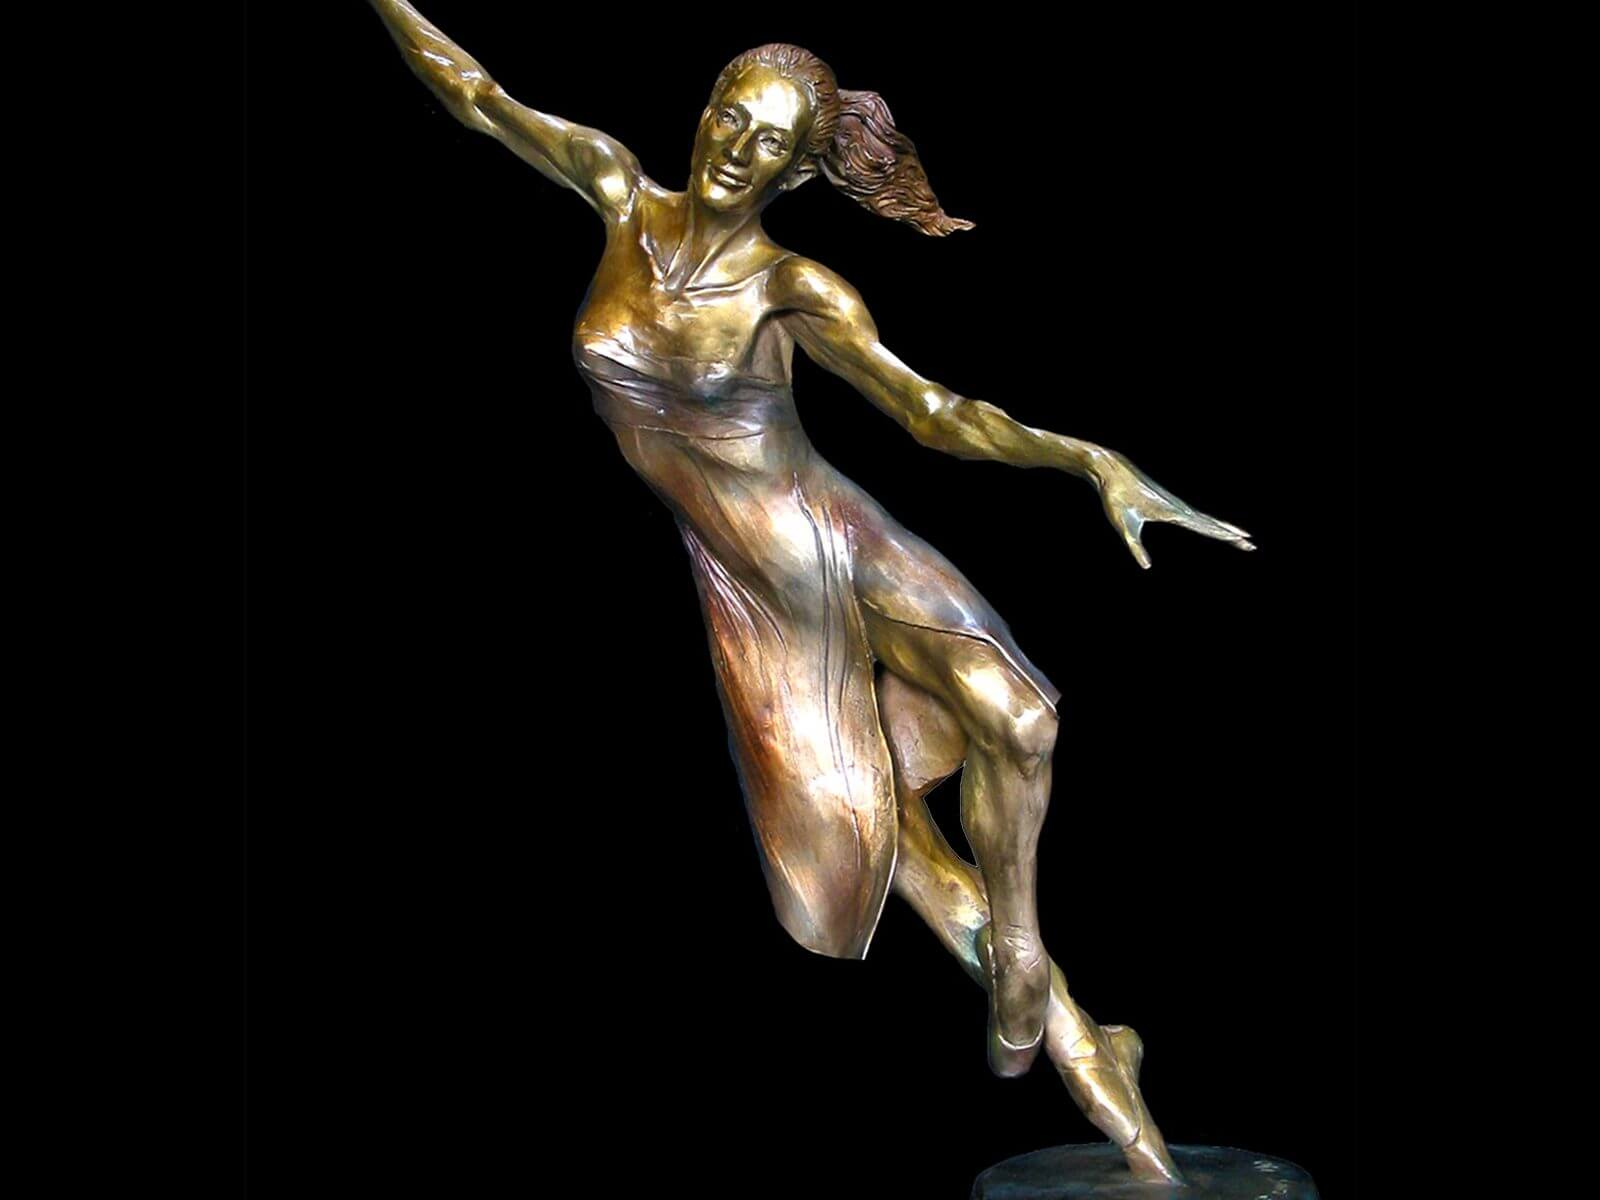 Moon beam a female ballet bronze dance sculpture by sculptor Andrew DeVries